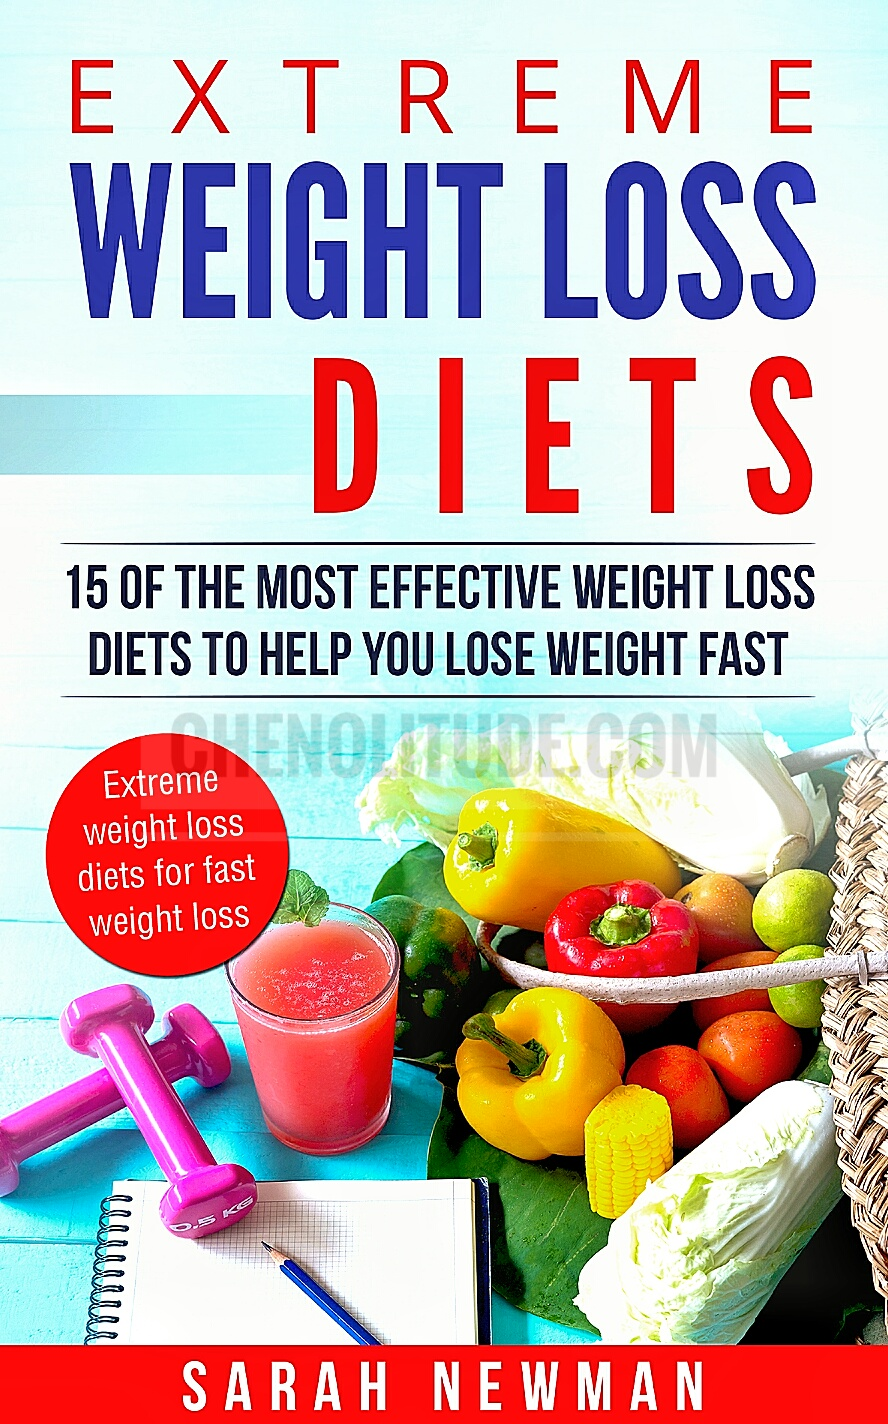 """extreme weight loss diets"""